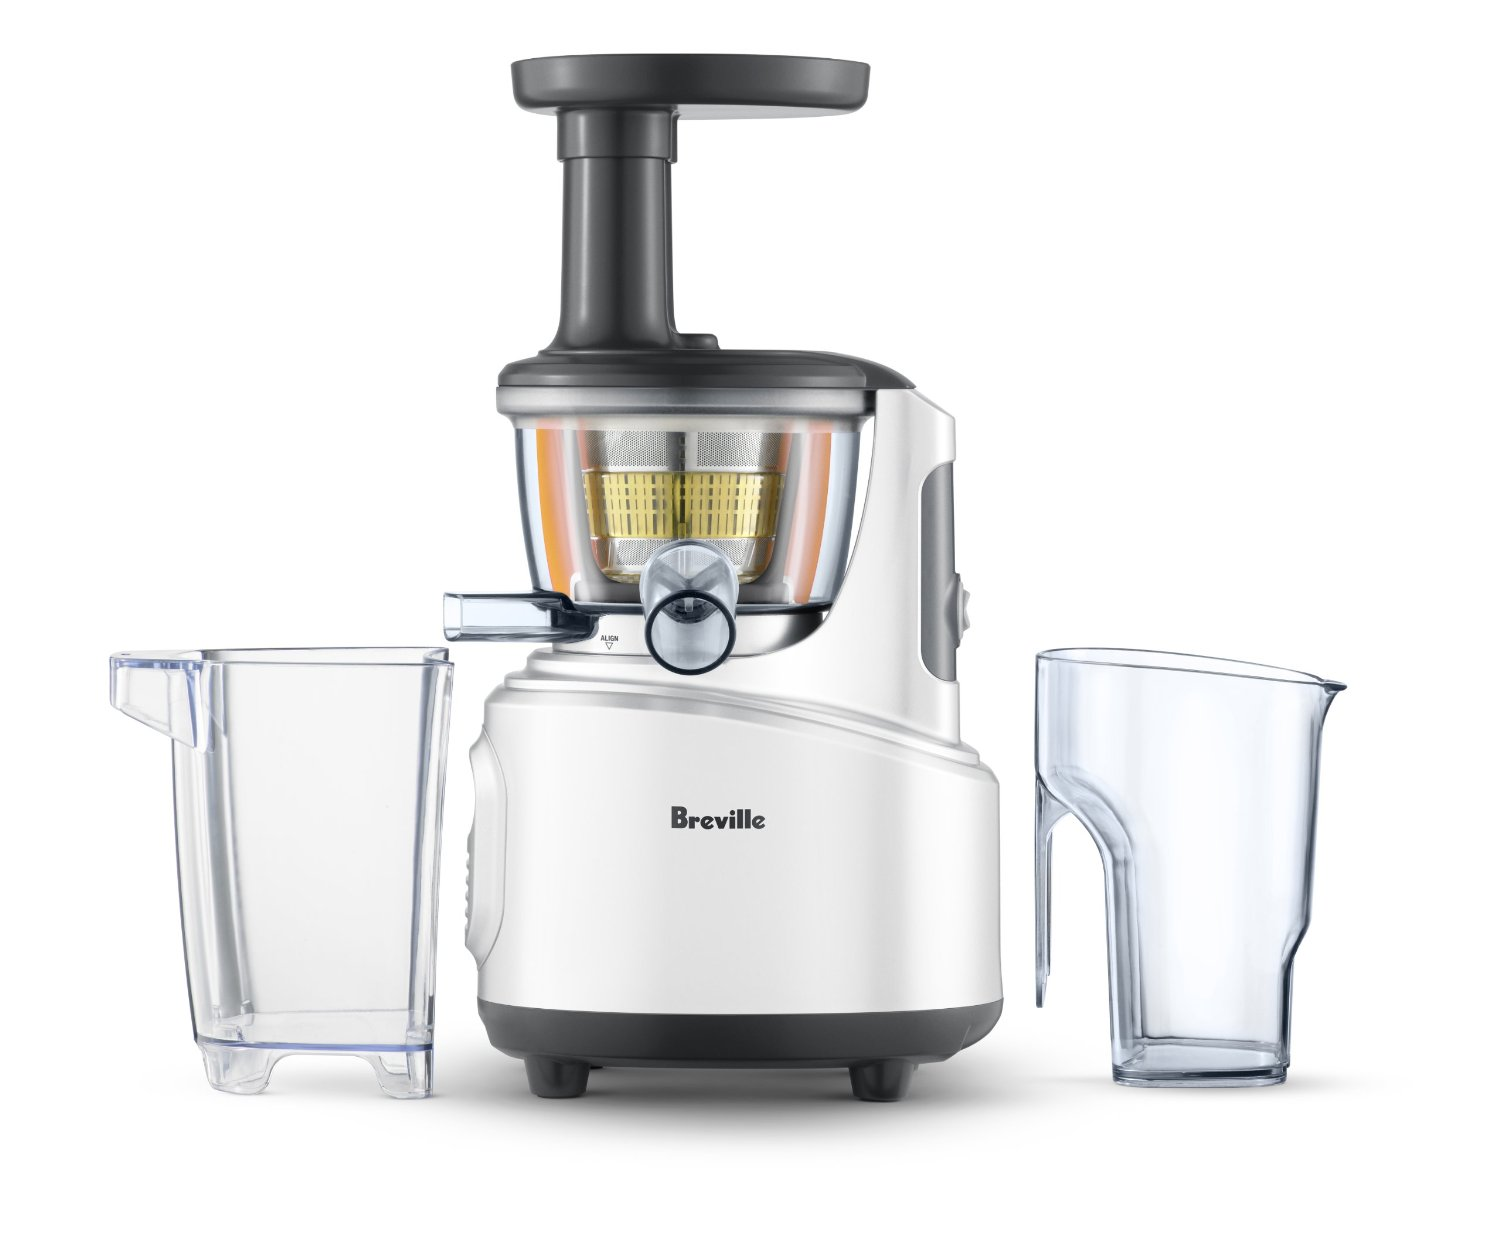 Breville Juicer (View 10 of 10)